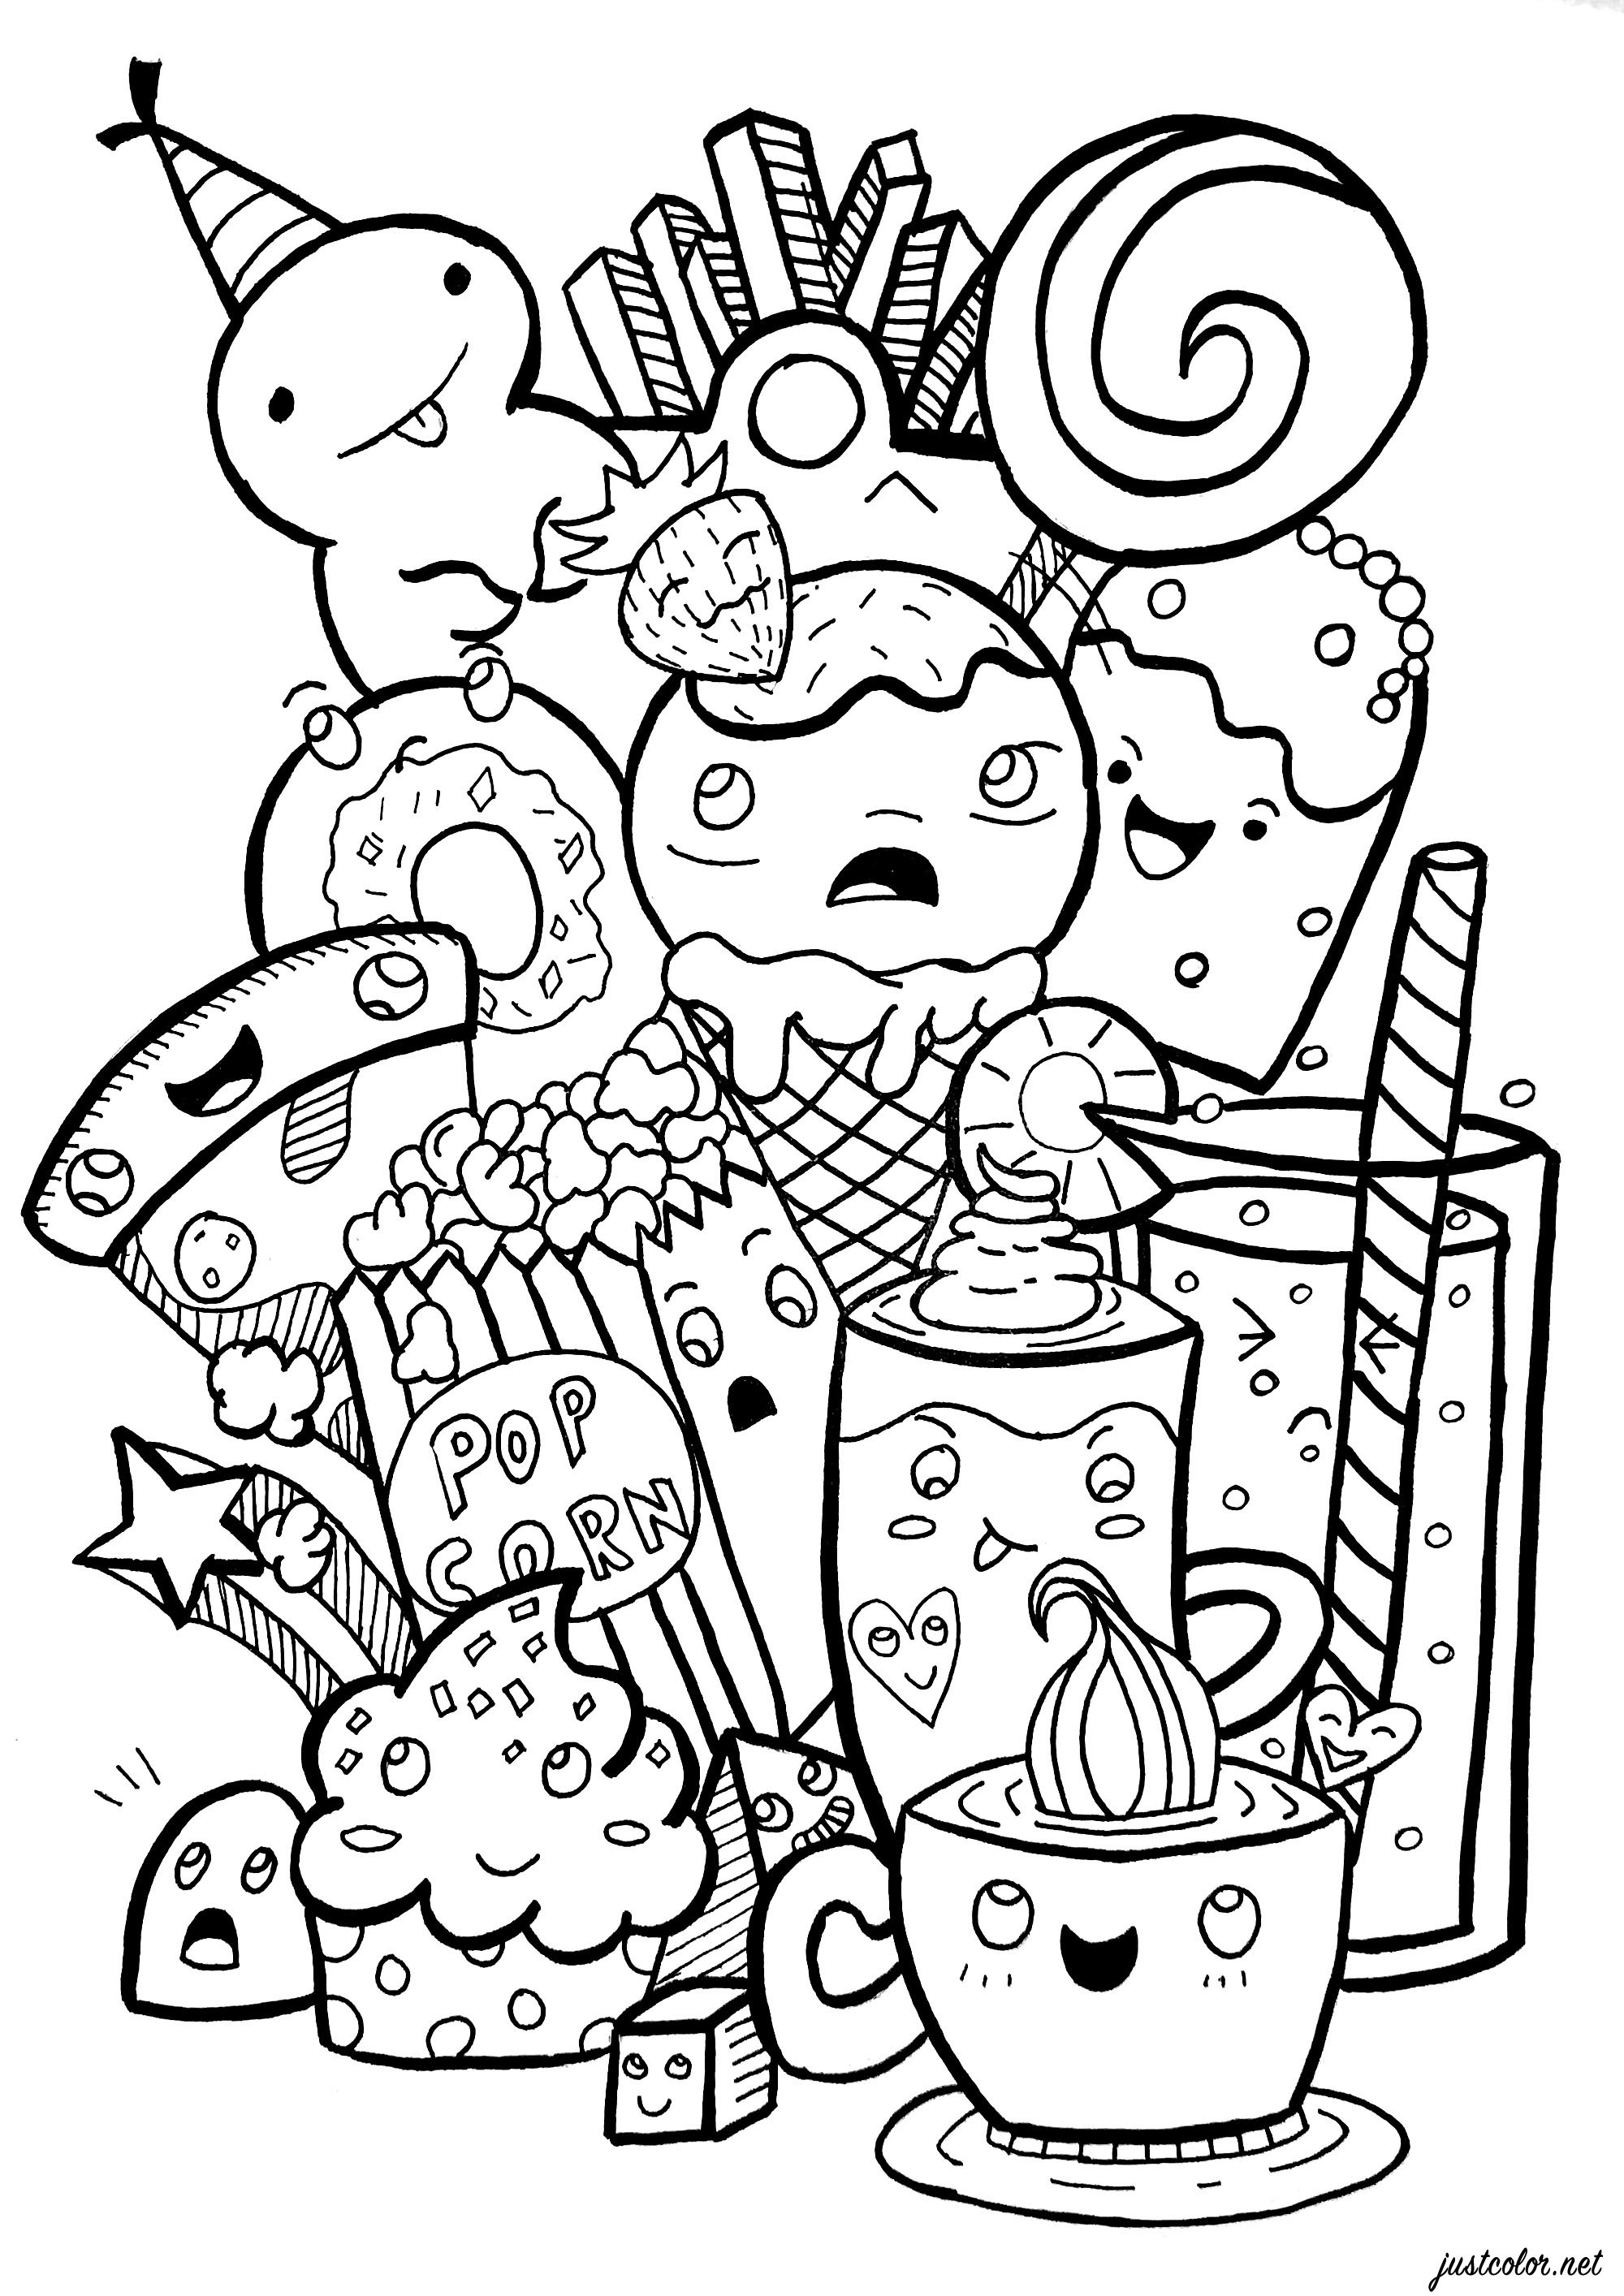 art coloring pages graffiti quilting coloring book downloadable karlee porter coloring art pages